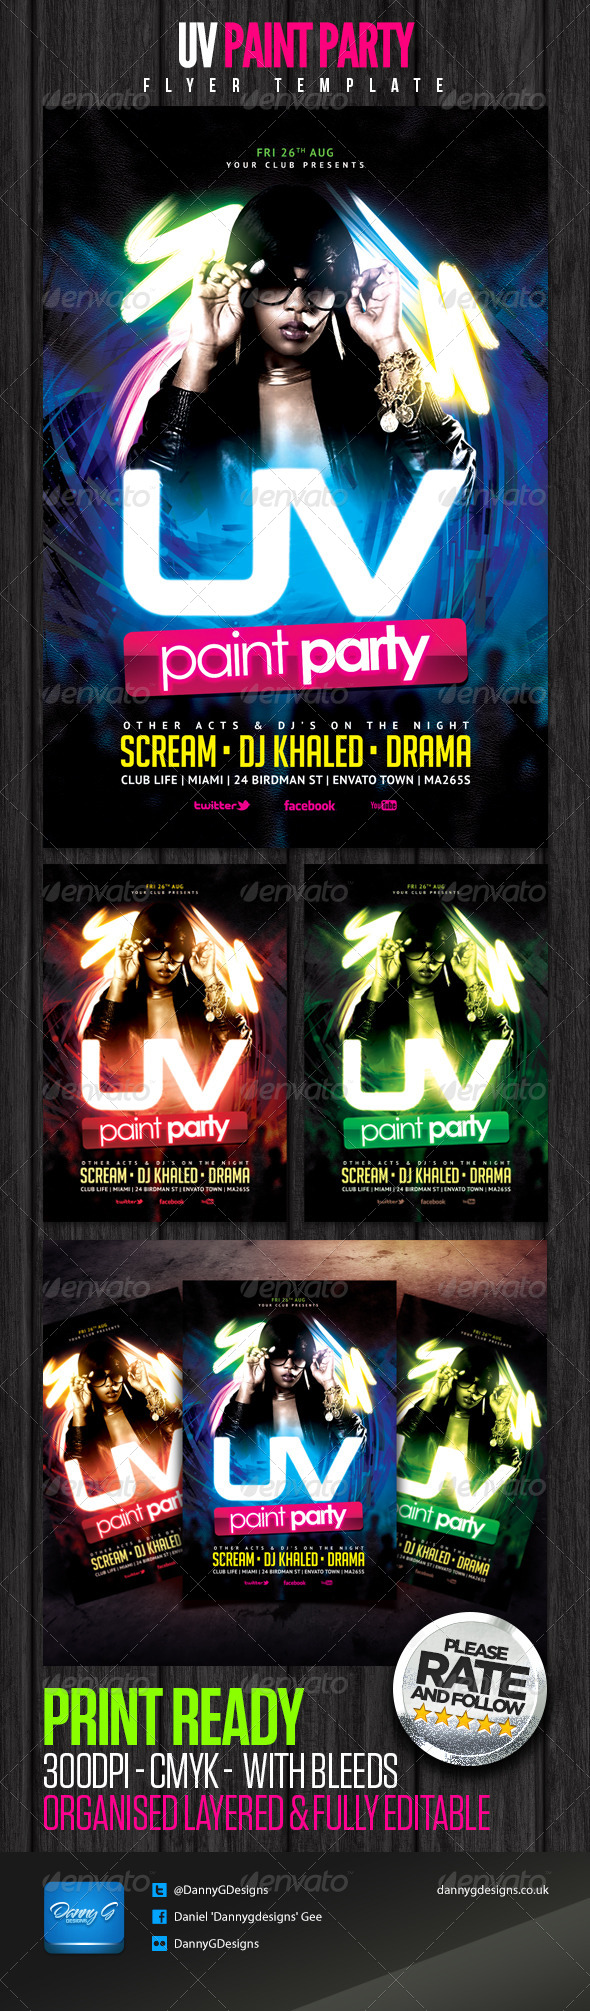 UV Paint Party Flyer Template - Clubs & Parties Events